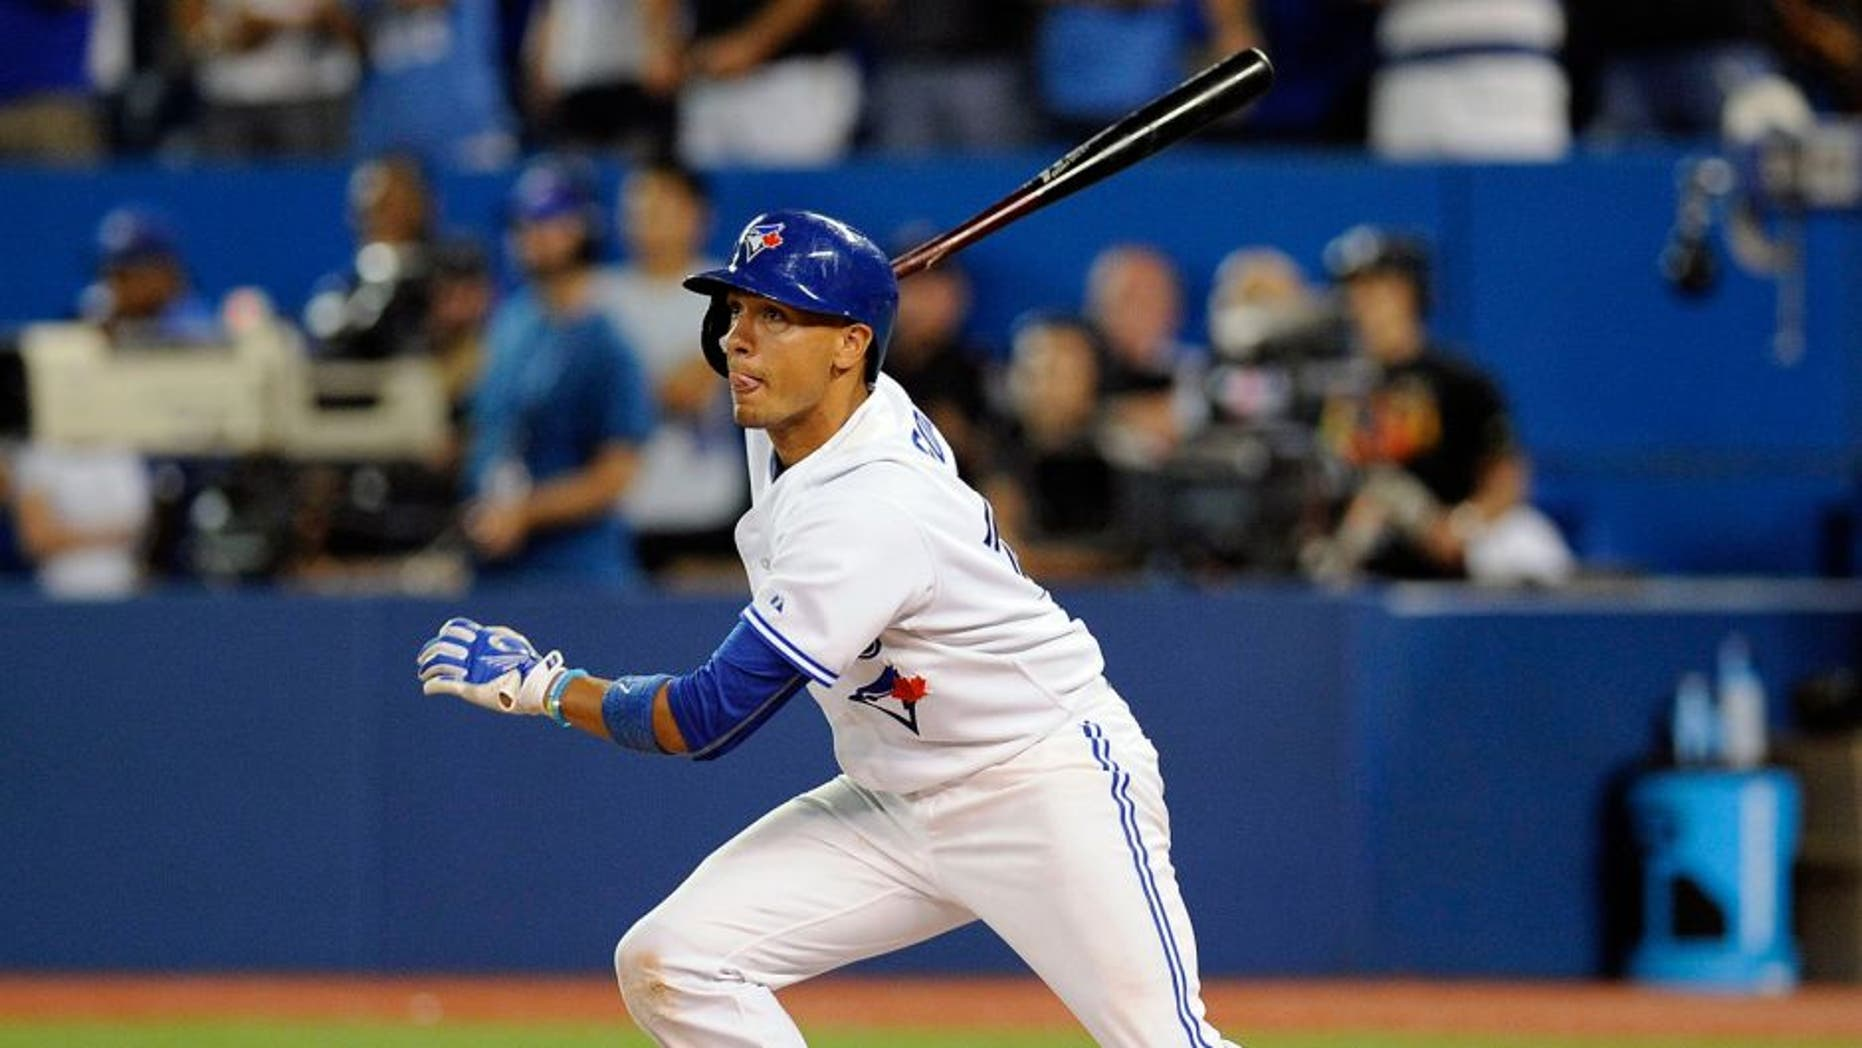 Aug 31, 2015; Toronto, Ontario, CAN; Toronto Blue Jays second baseman Ryan Goins (17) hits a single in the ninth inning against Cleveland Indians at Rogers Centre. Indians beat Jay 4 - 2. Mandatory Credit: Peter Llewellyn-USA TODAY Sports